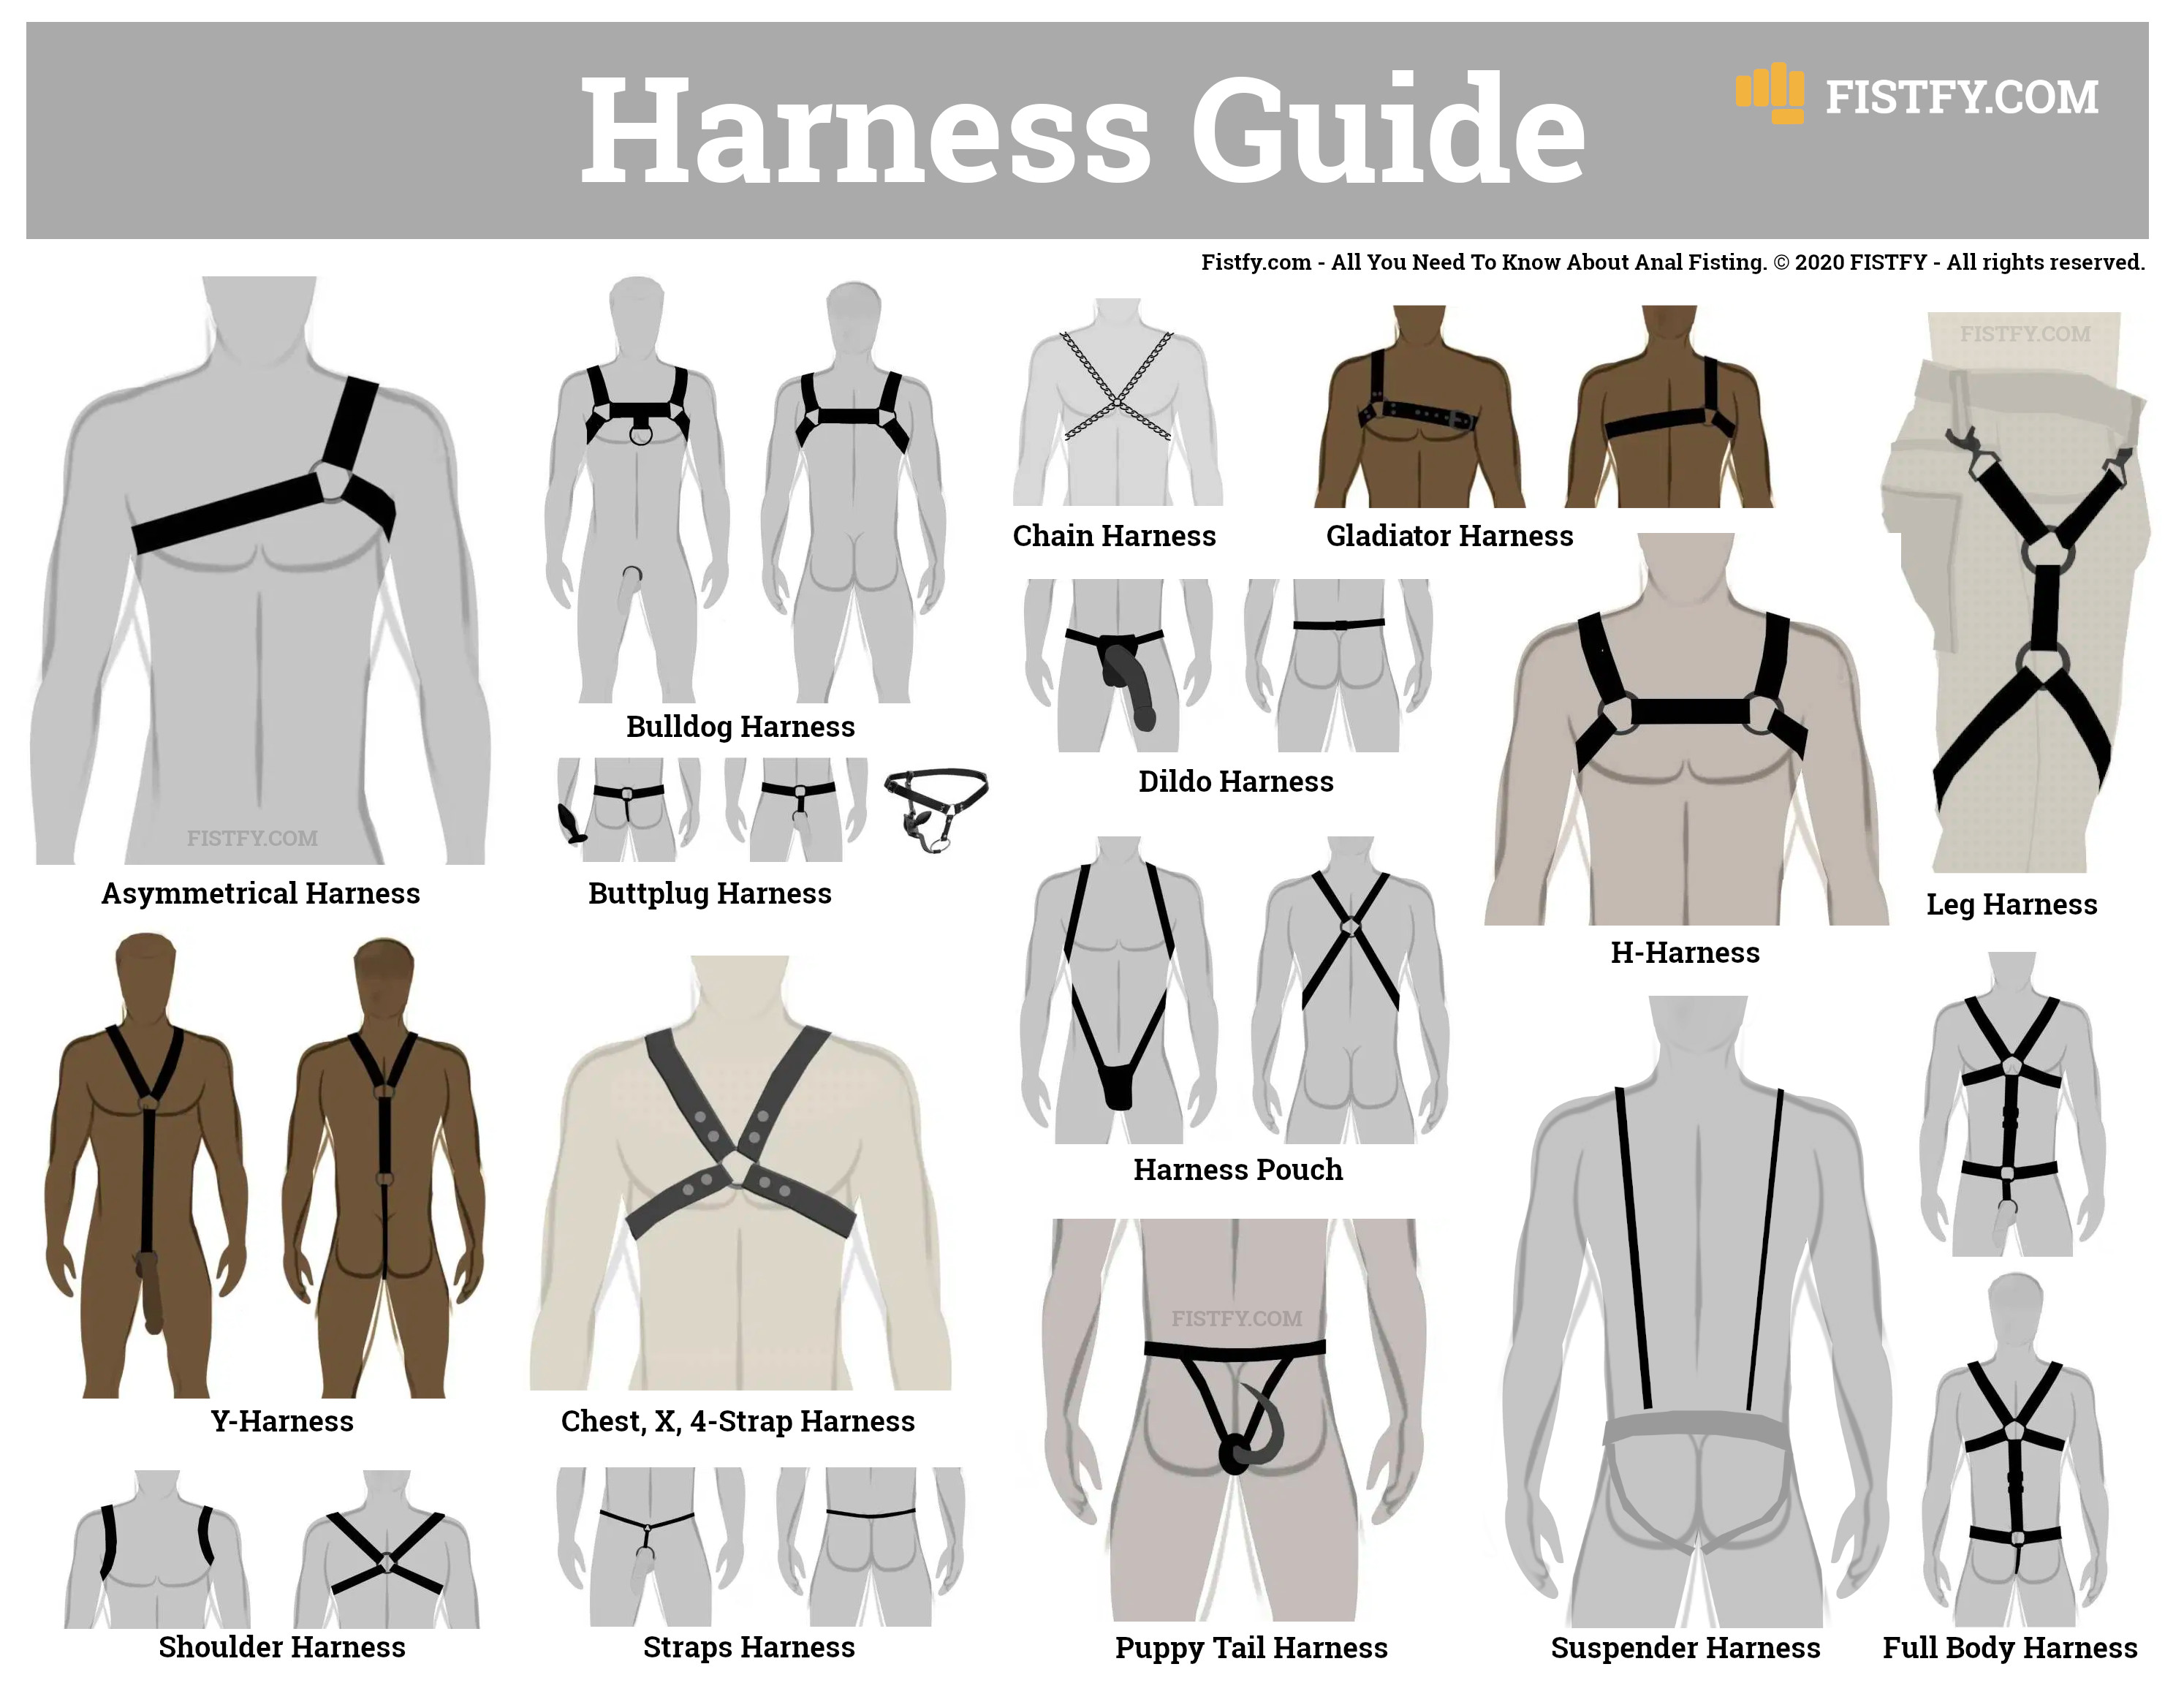 Gay Harness guide